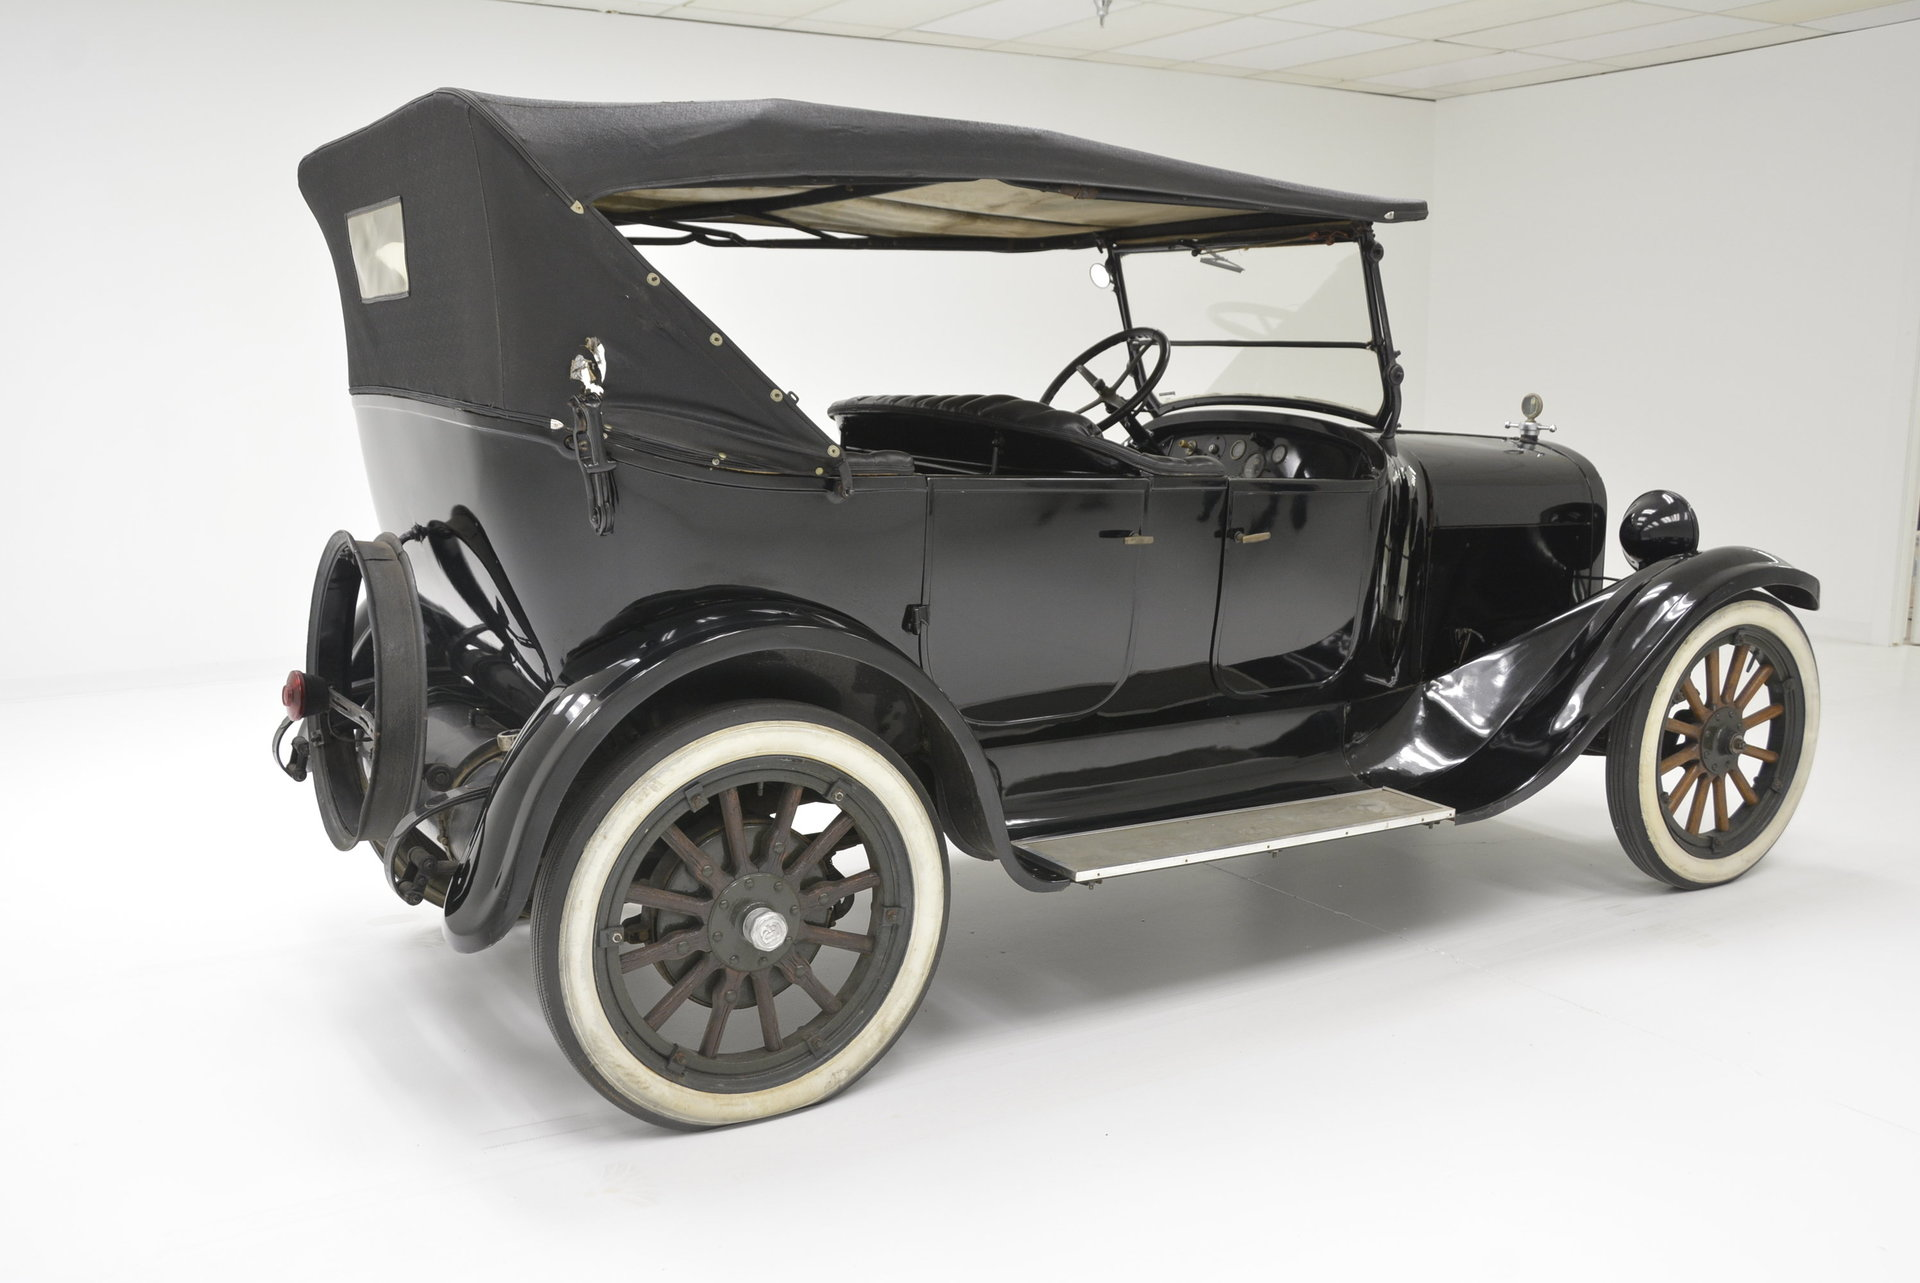 HISTORY OF THE DODGE ANTIQUE CARS | ANTIQUES CENTER |1929 Dodge Touring Car